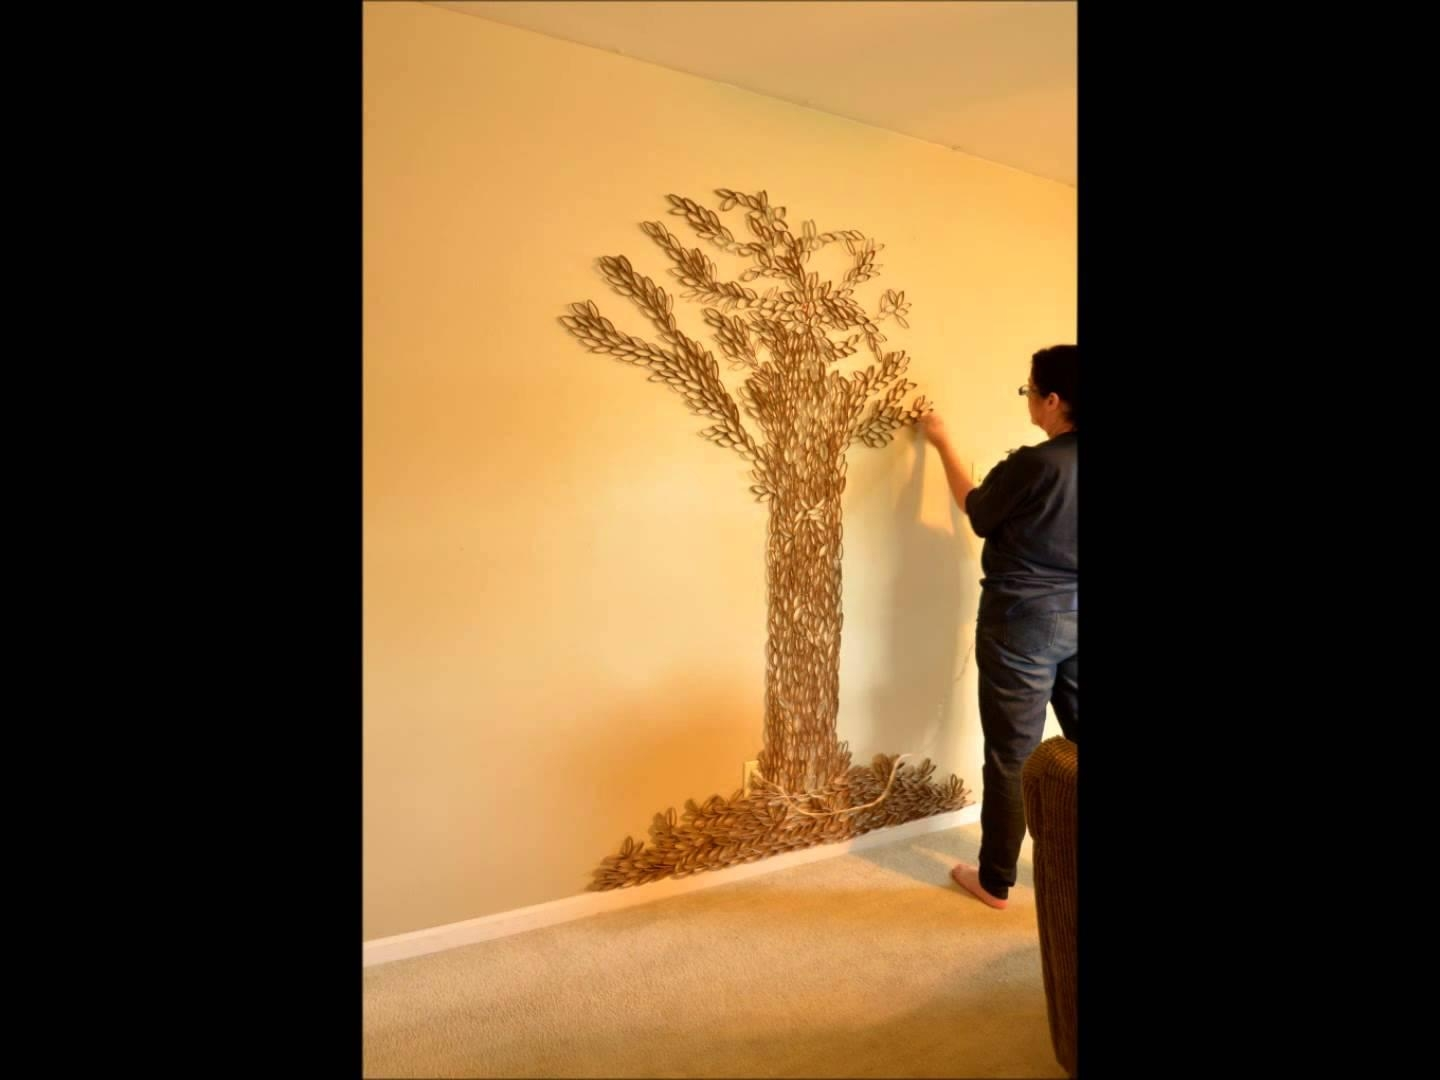 Tree Of Life Wall Art – 7Ft Paper Roll Sculpture In 1 Minute With Regard To Tree Wall Art Sculpture (Image 16 of 20)